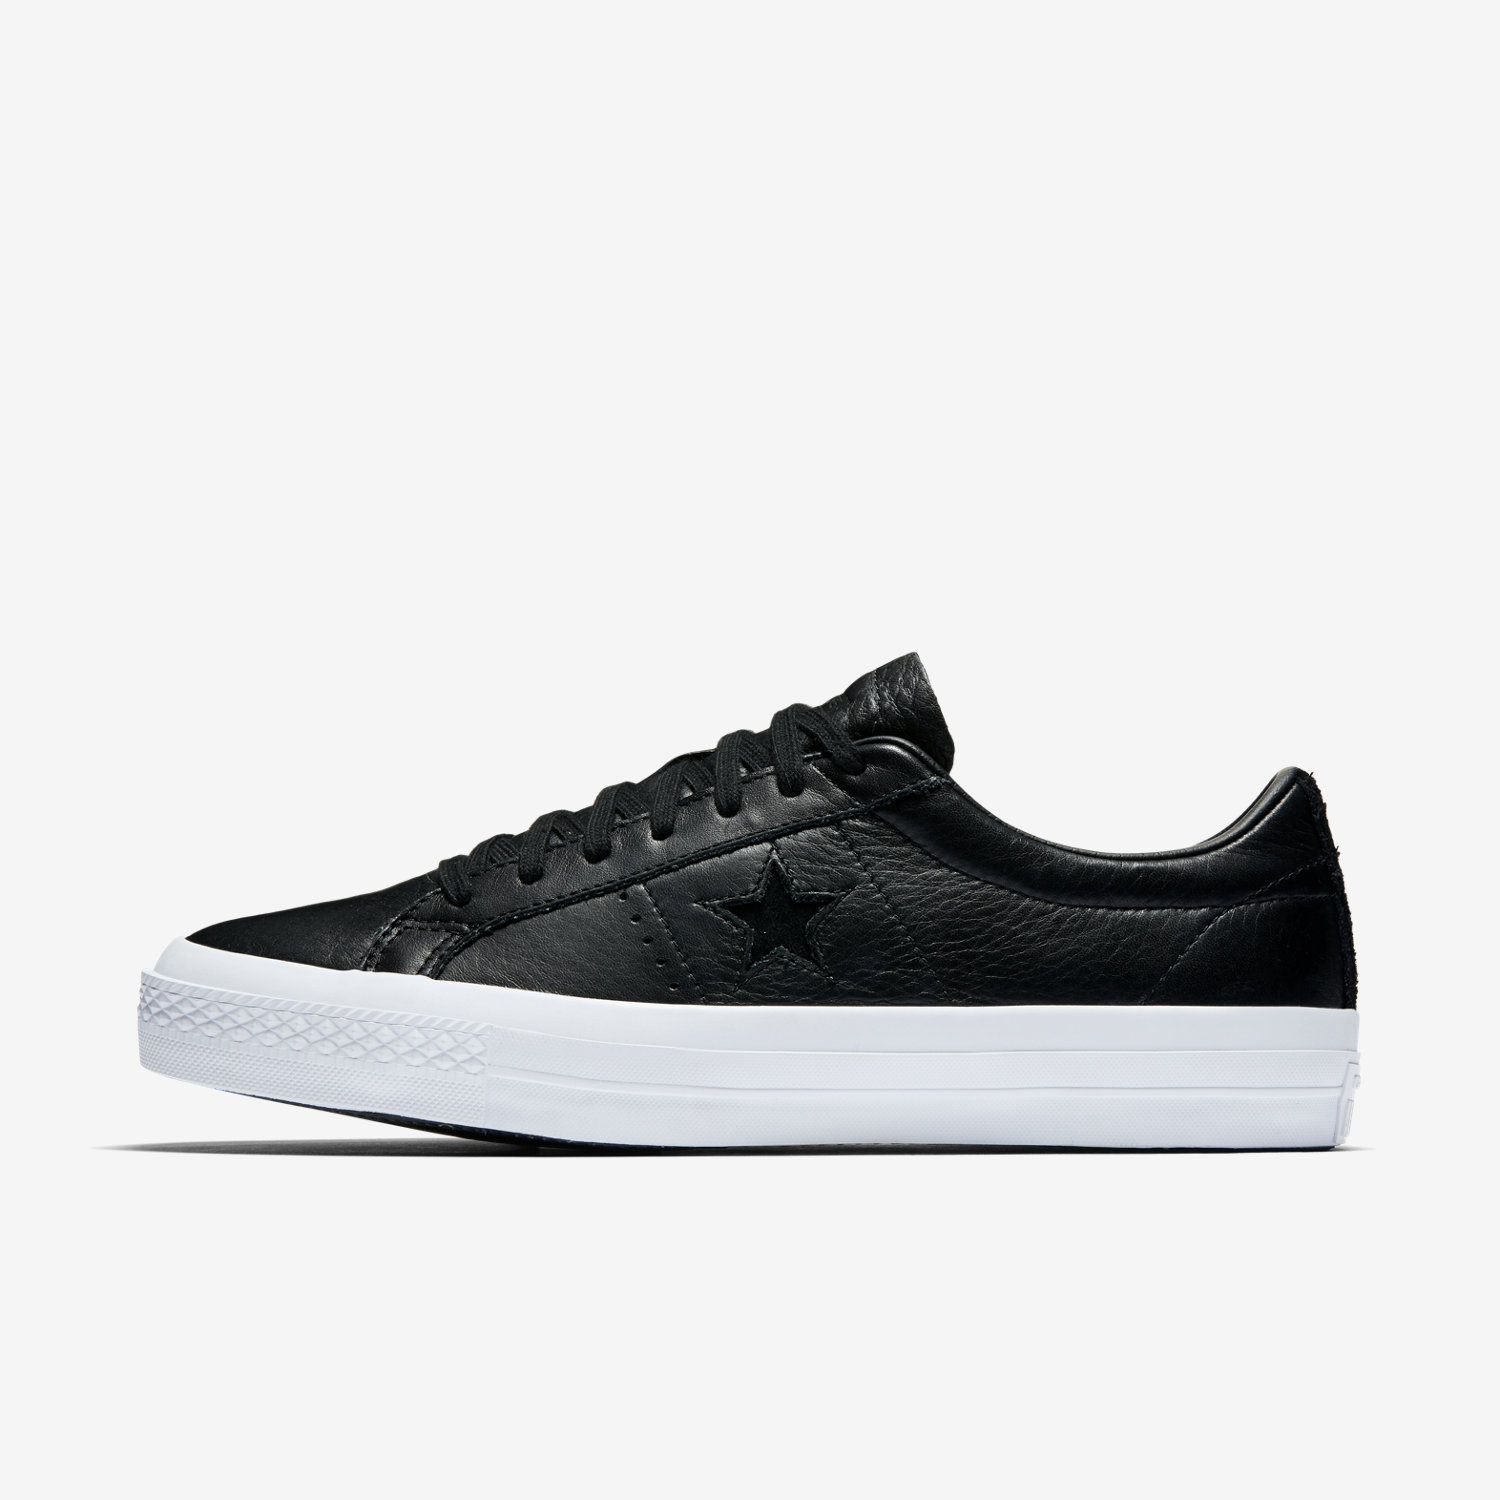 CONVERSE ONE STAR PREMIUM LEATHER LOW